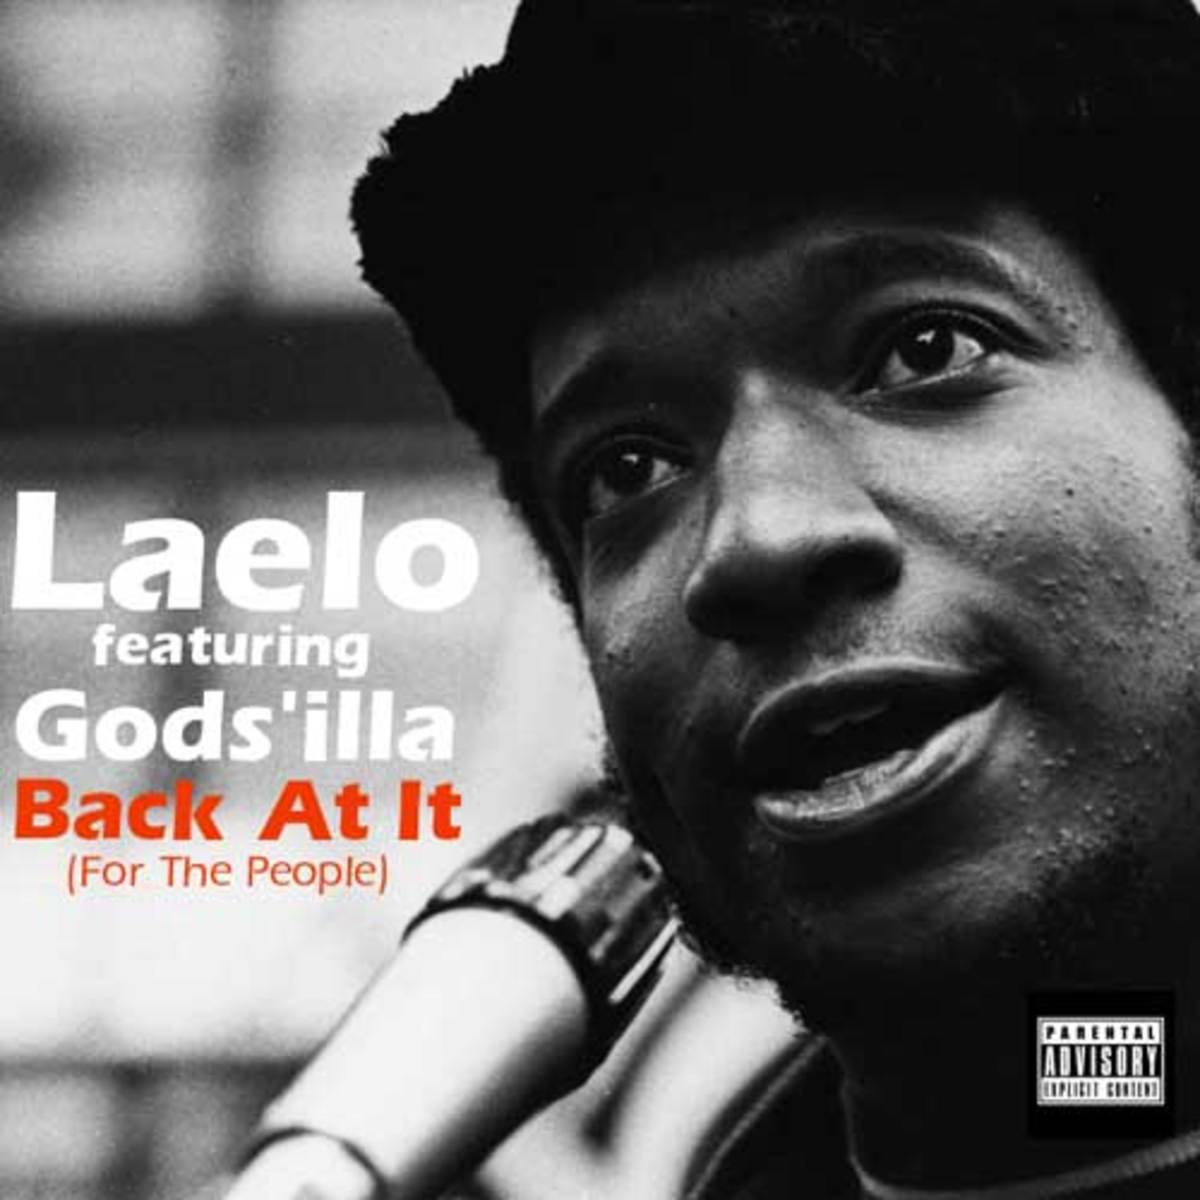 laelo-backatit.jpg